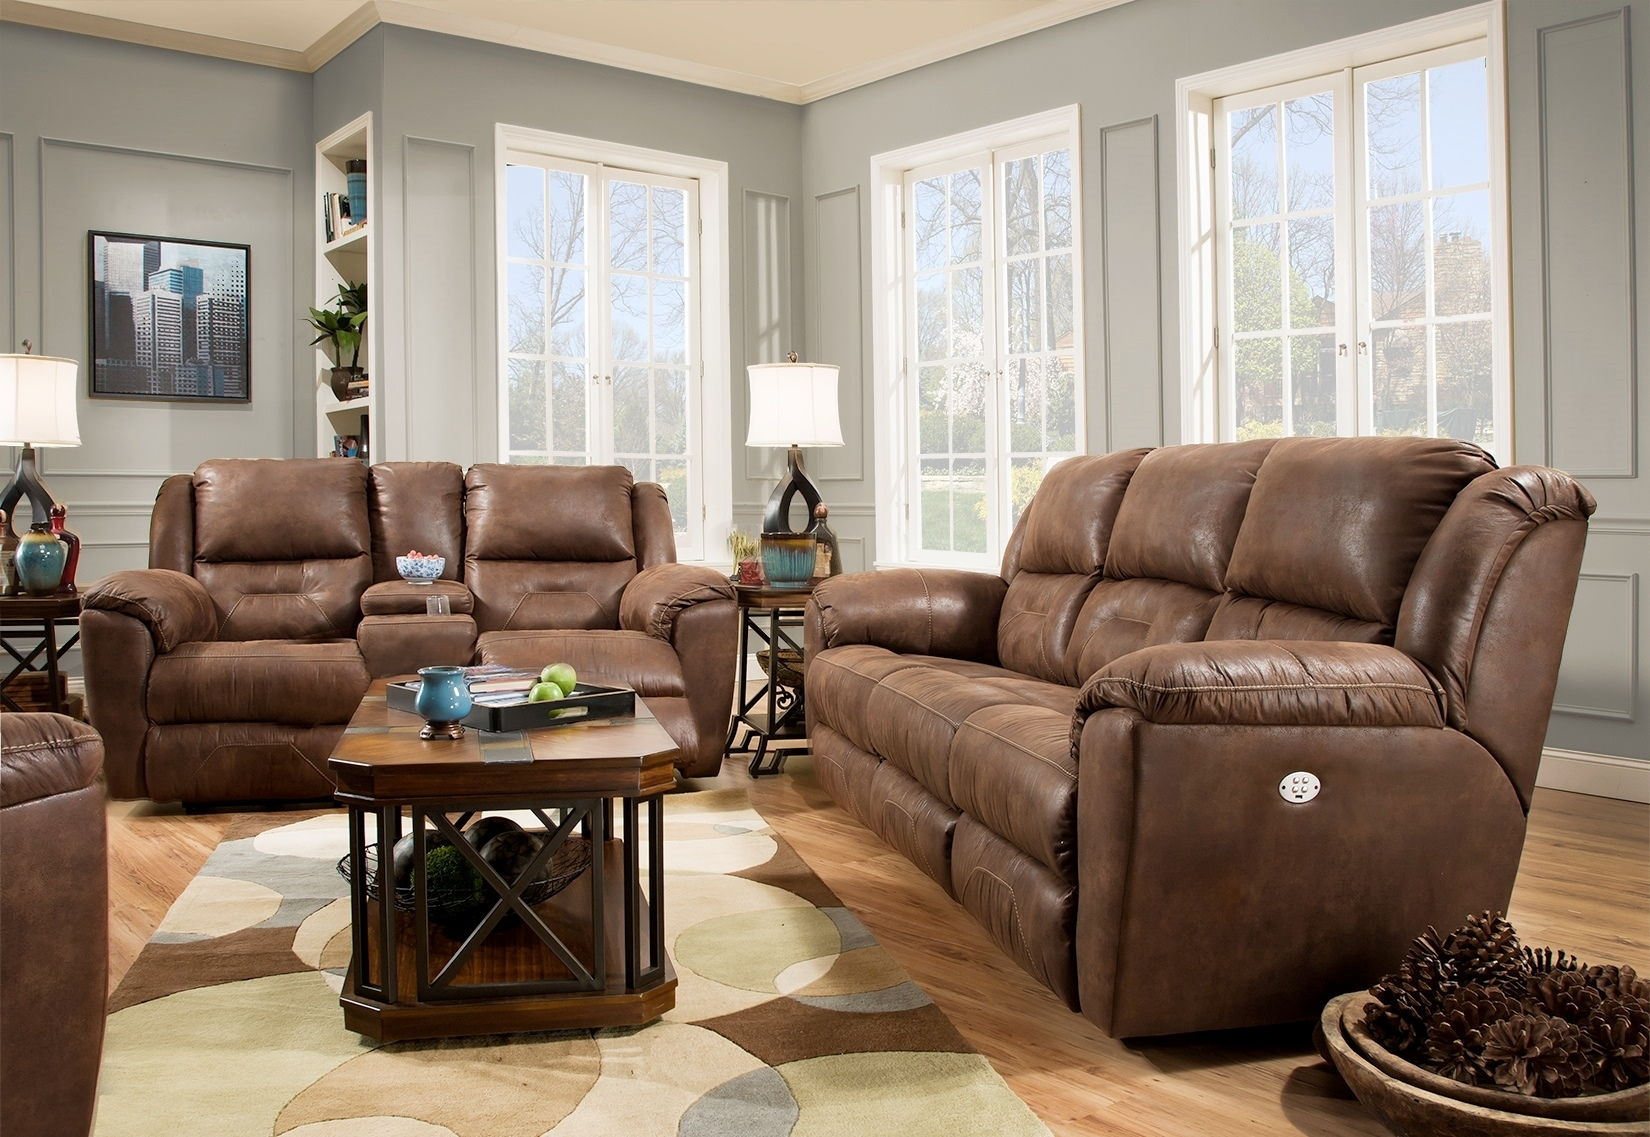 Motion Furniture Products – Recliner Chairs, Sofas And More Intended For Travis Cognac Leather 6 Piece Power Reclining Sectionals With Power Headrest & Usb (Image 19 of 25)